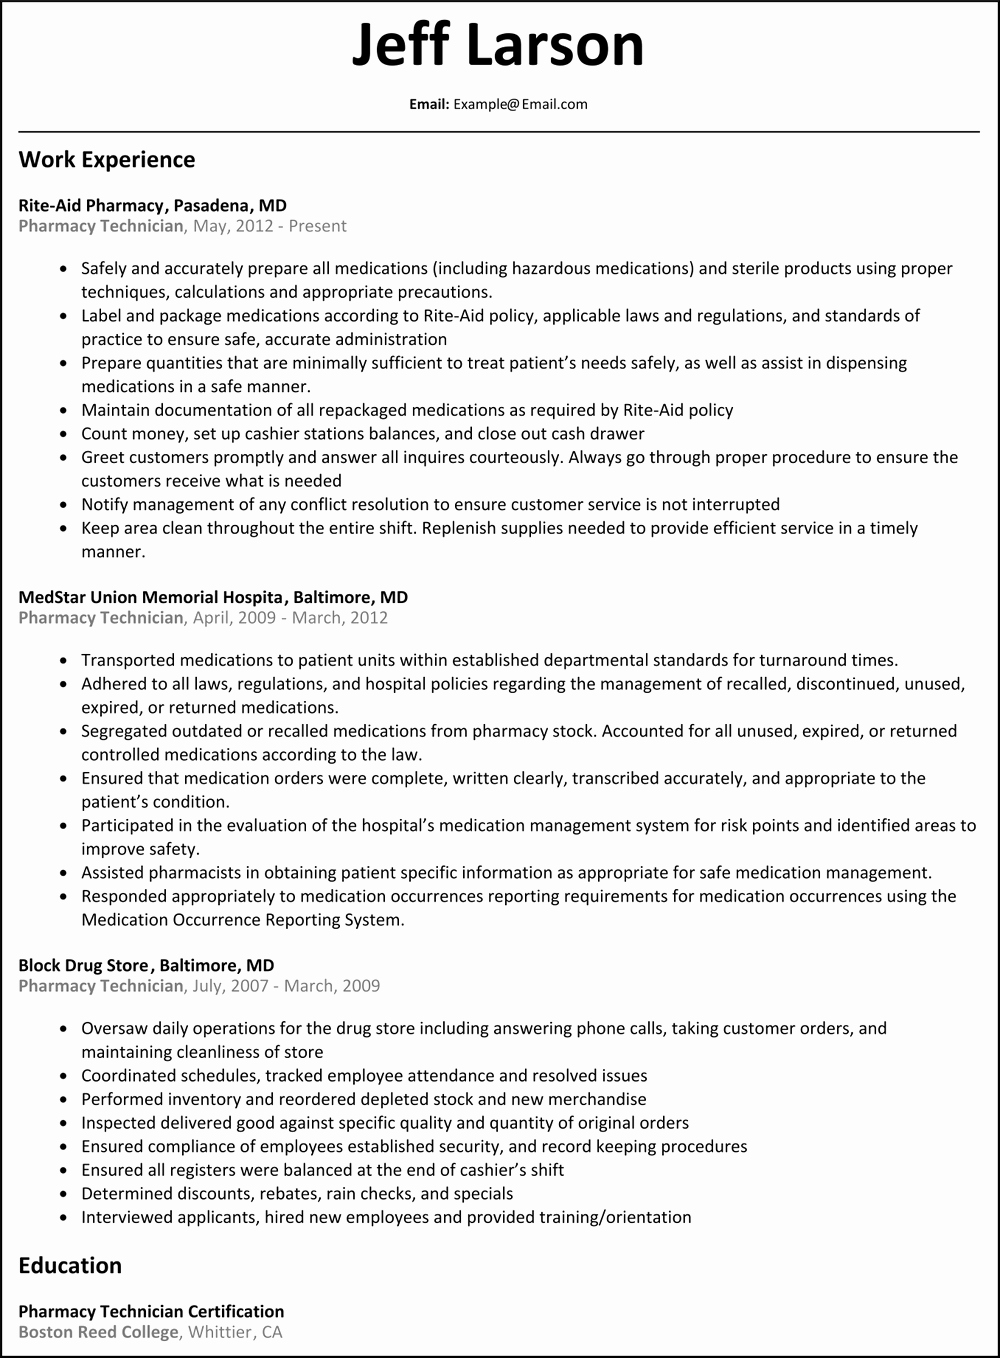 Pharmacy Technician Resume Template Best Of Pharmacy Technician Resume Skills